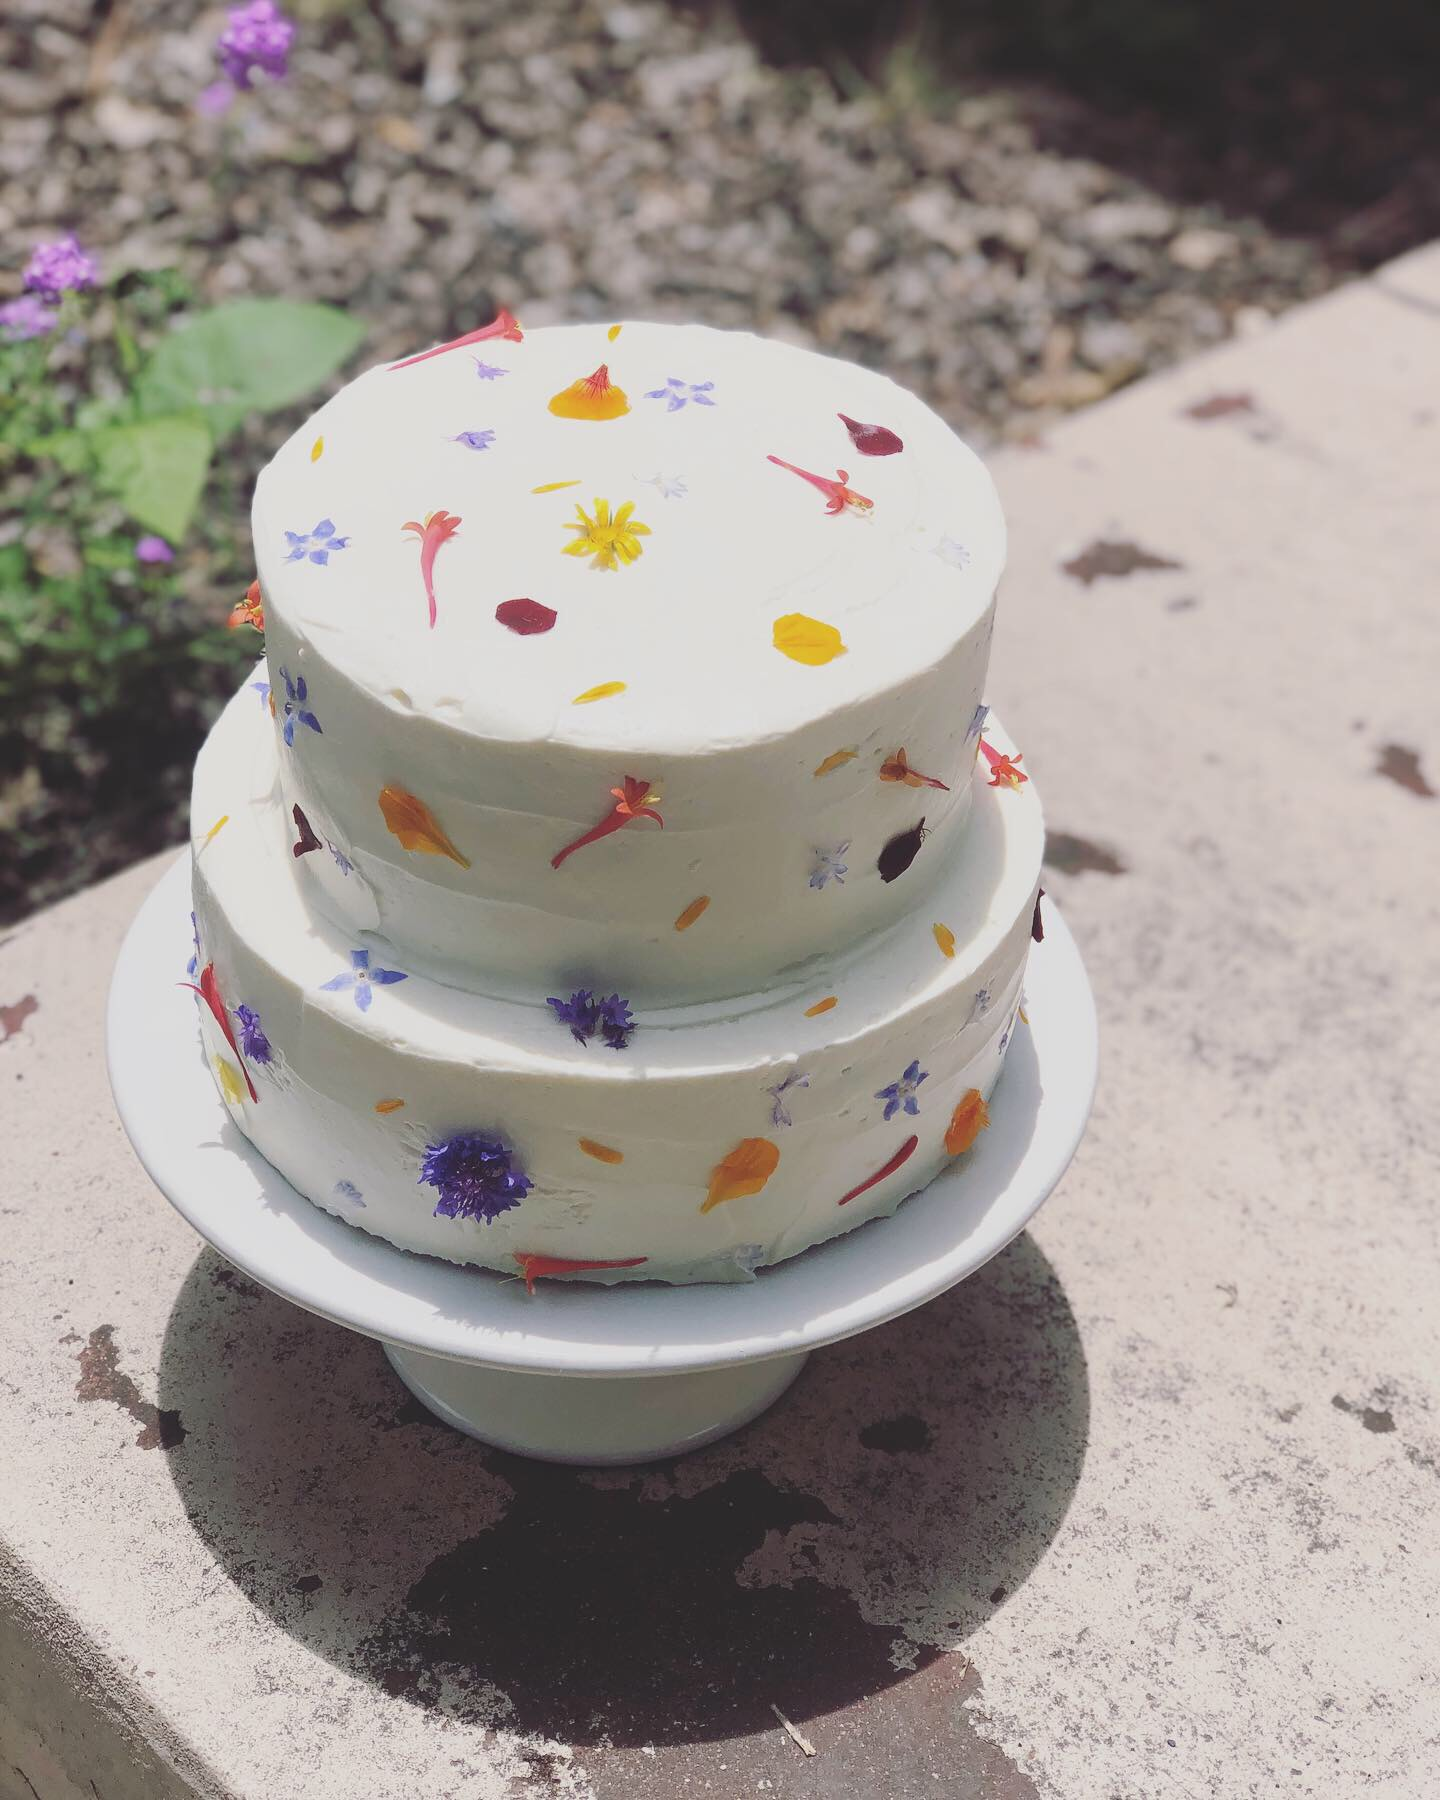 brown butter and cardamom cake • toasted strawberry swiss meringue buttercream • fresh strawberries • cream cheese chantilly • fresh spring flowers